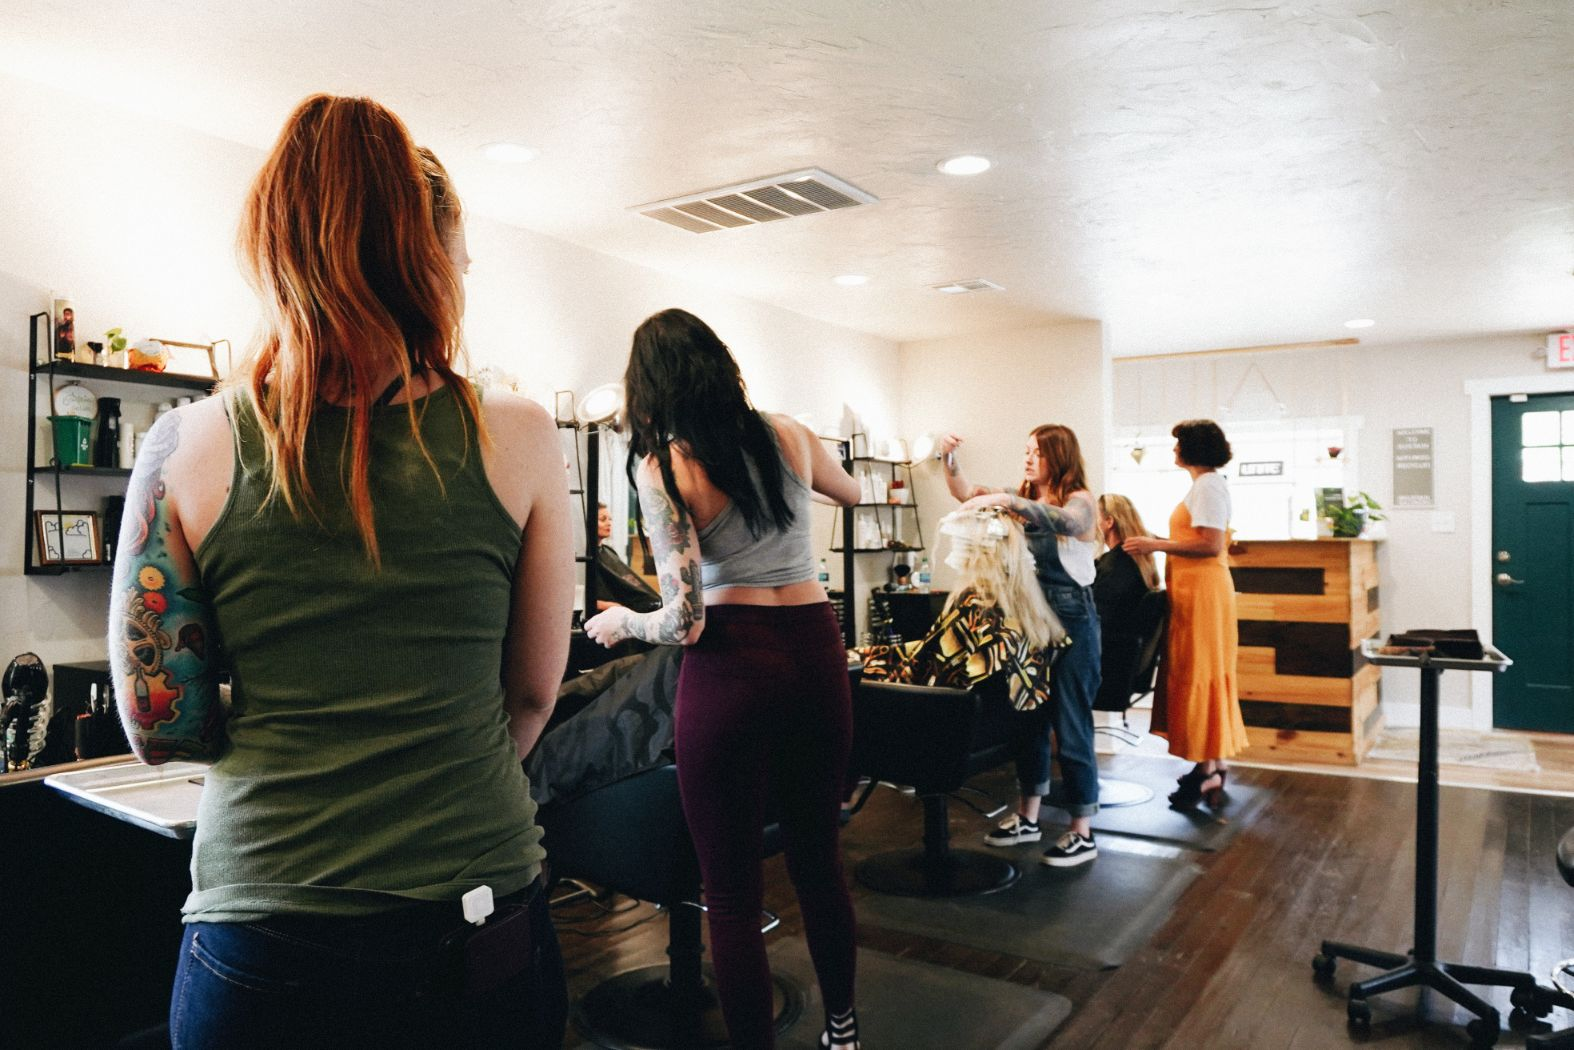 A photograph of the Sustain Salon team in action styling and cutting hair